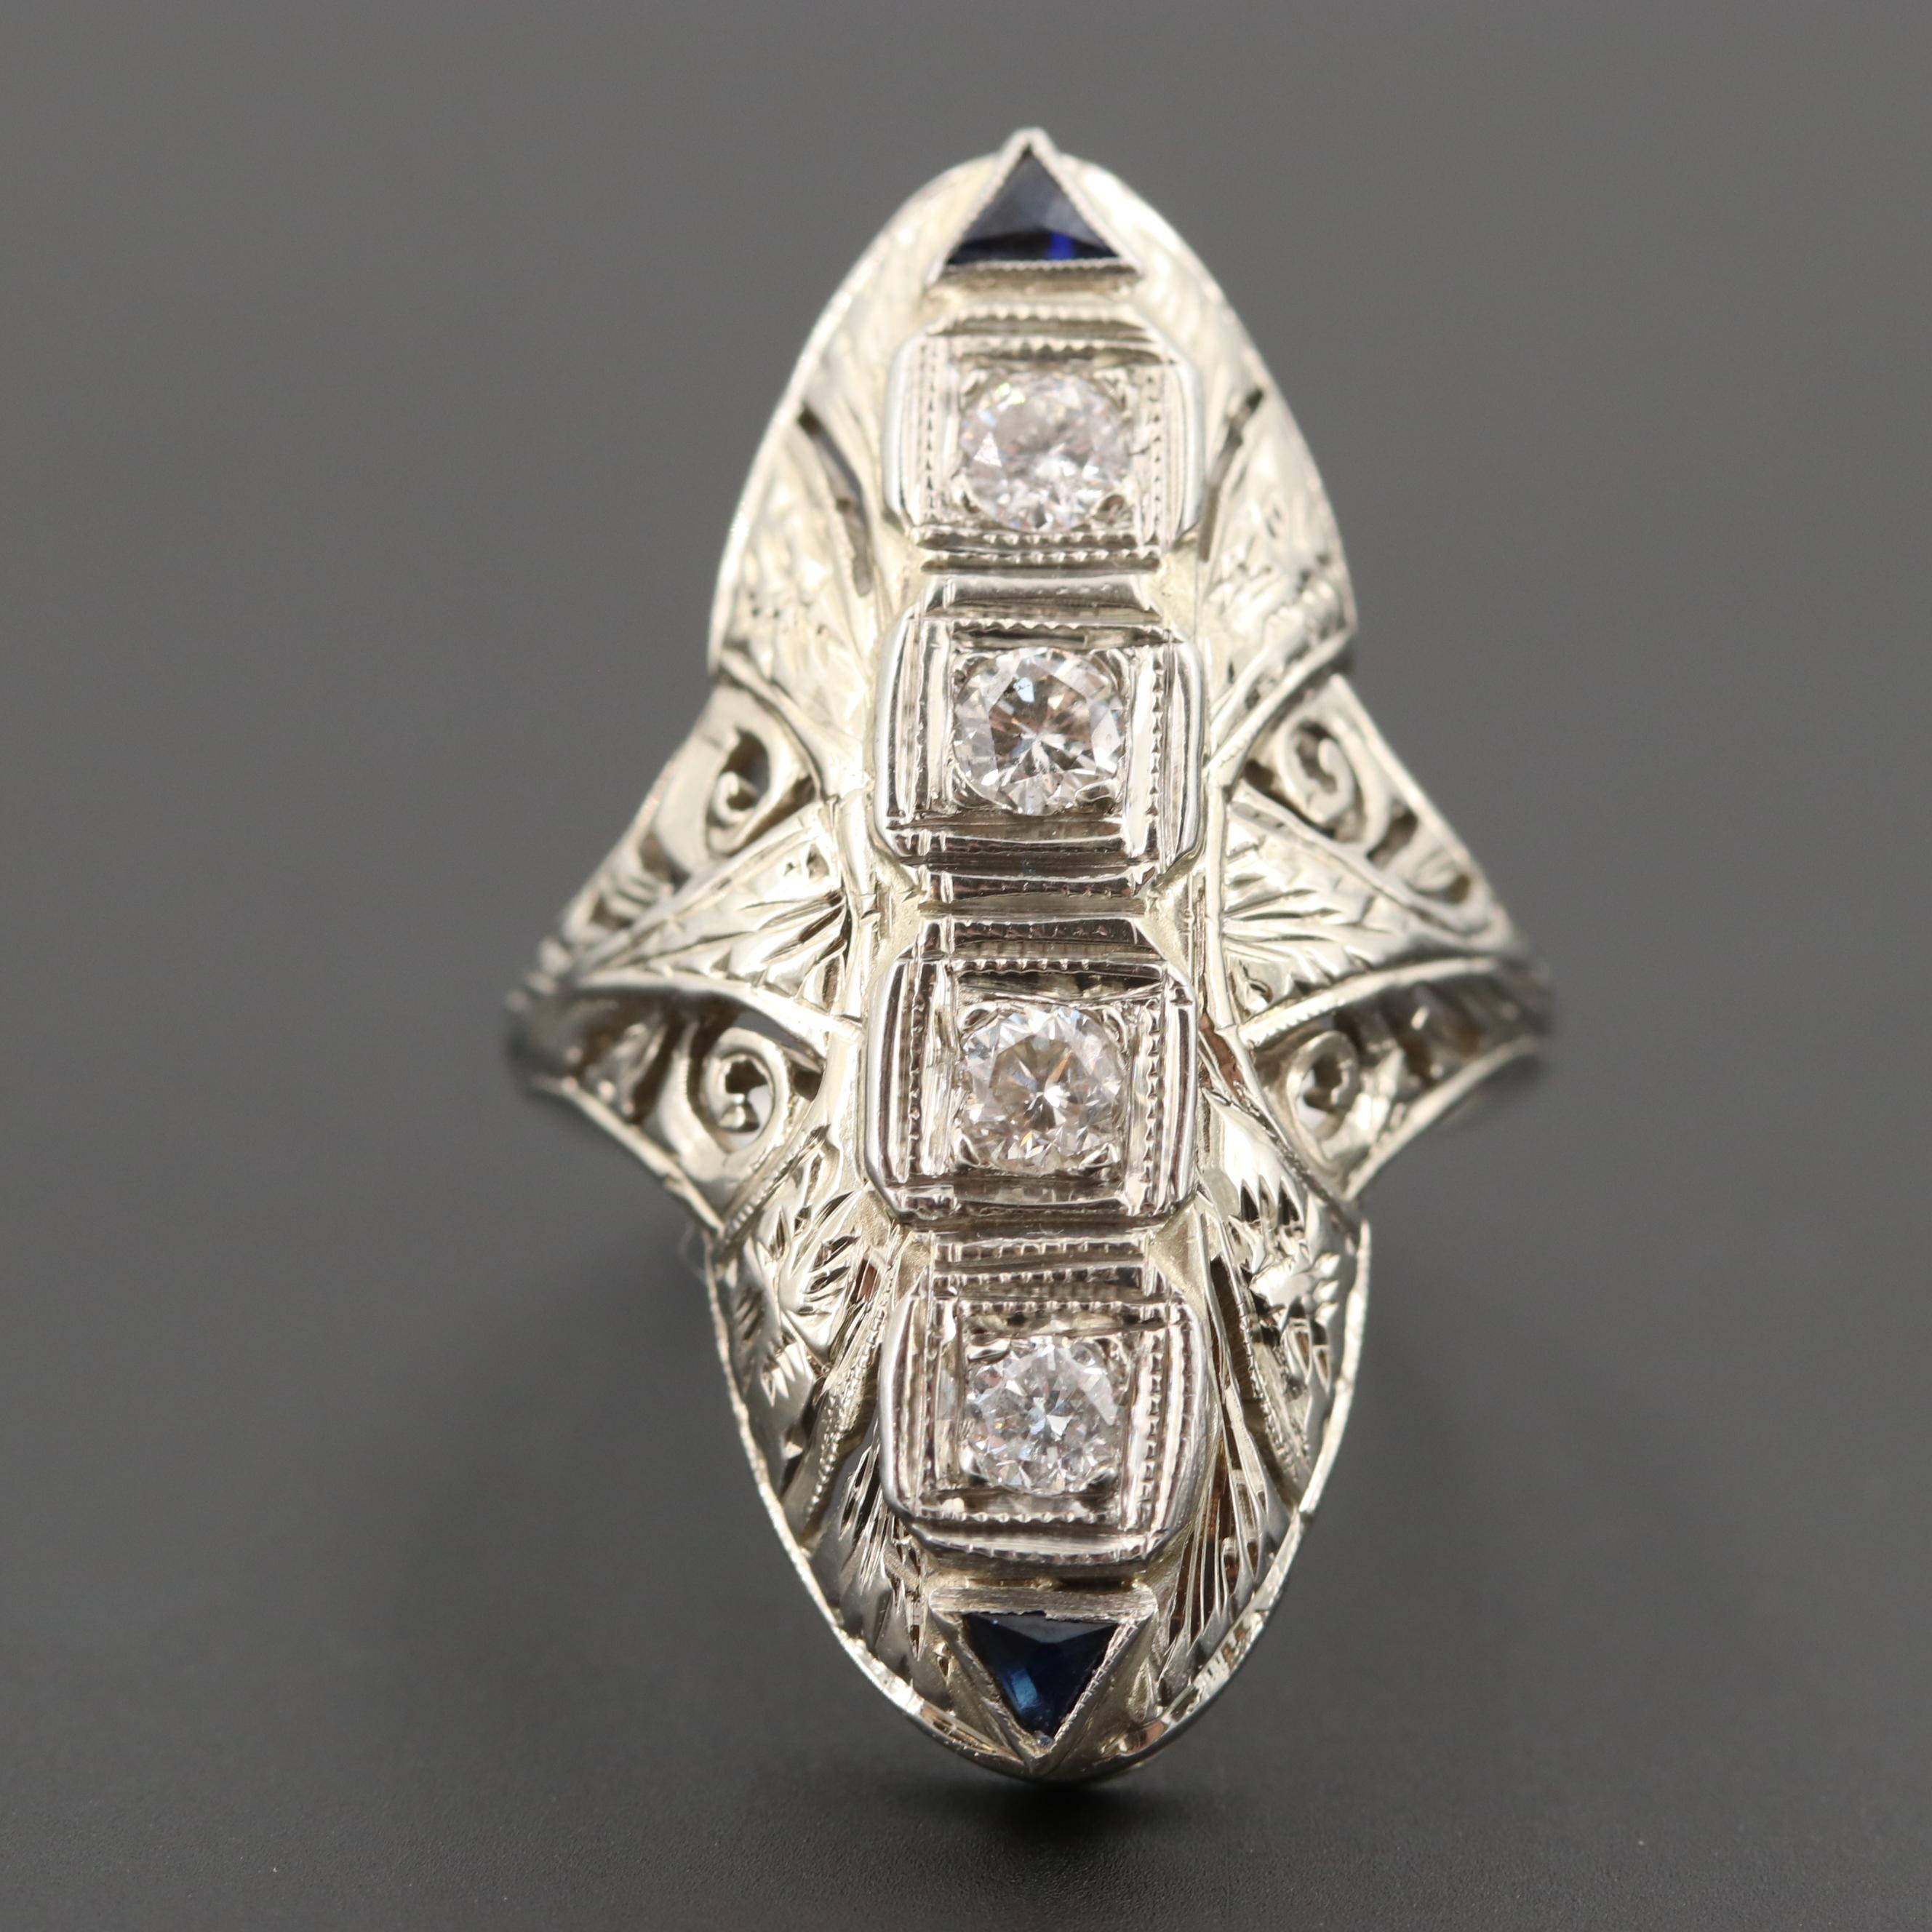 Art Deco 14K White Gold Diamond and Synthetic Sapphire Scrolled Openwork Ring